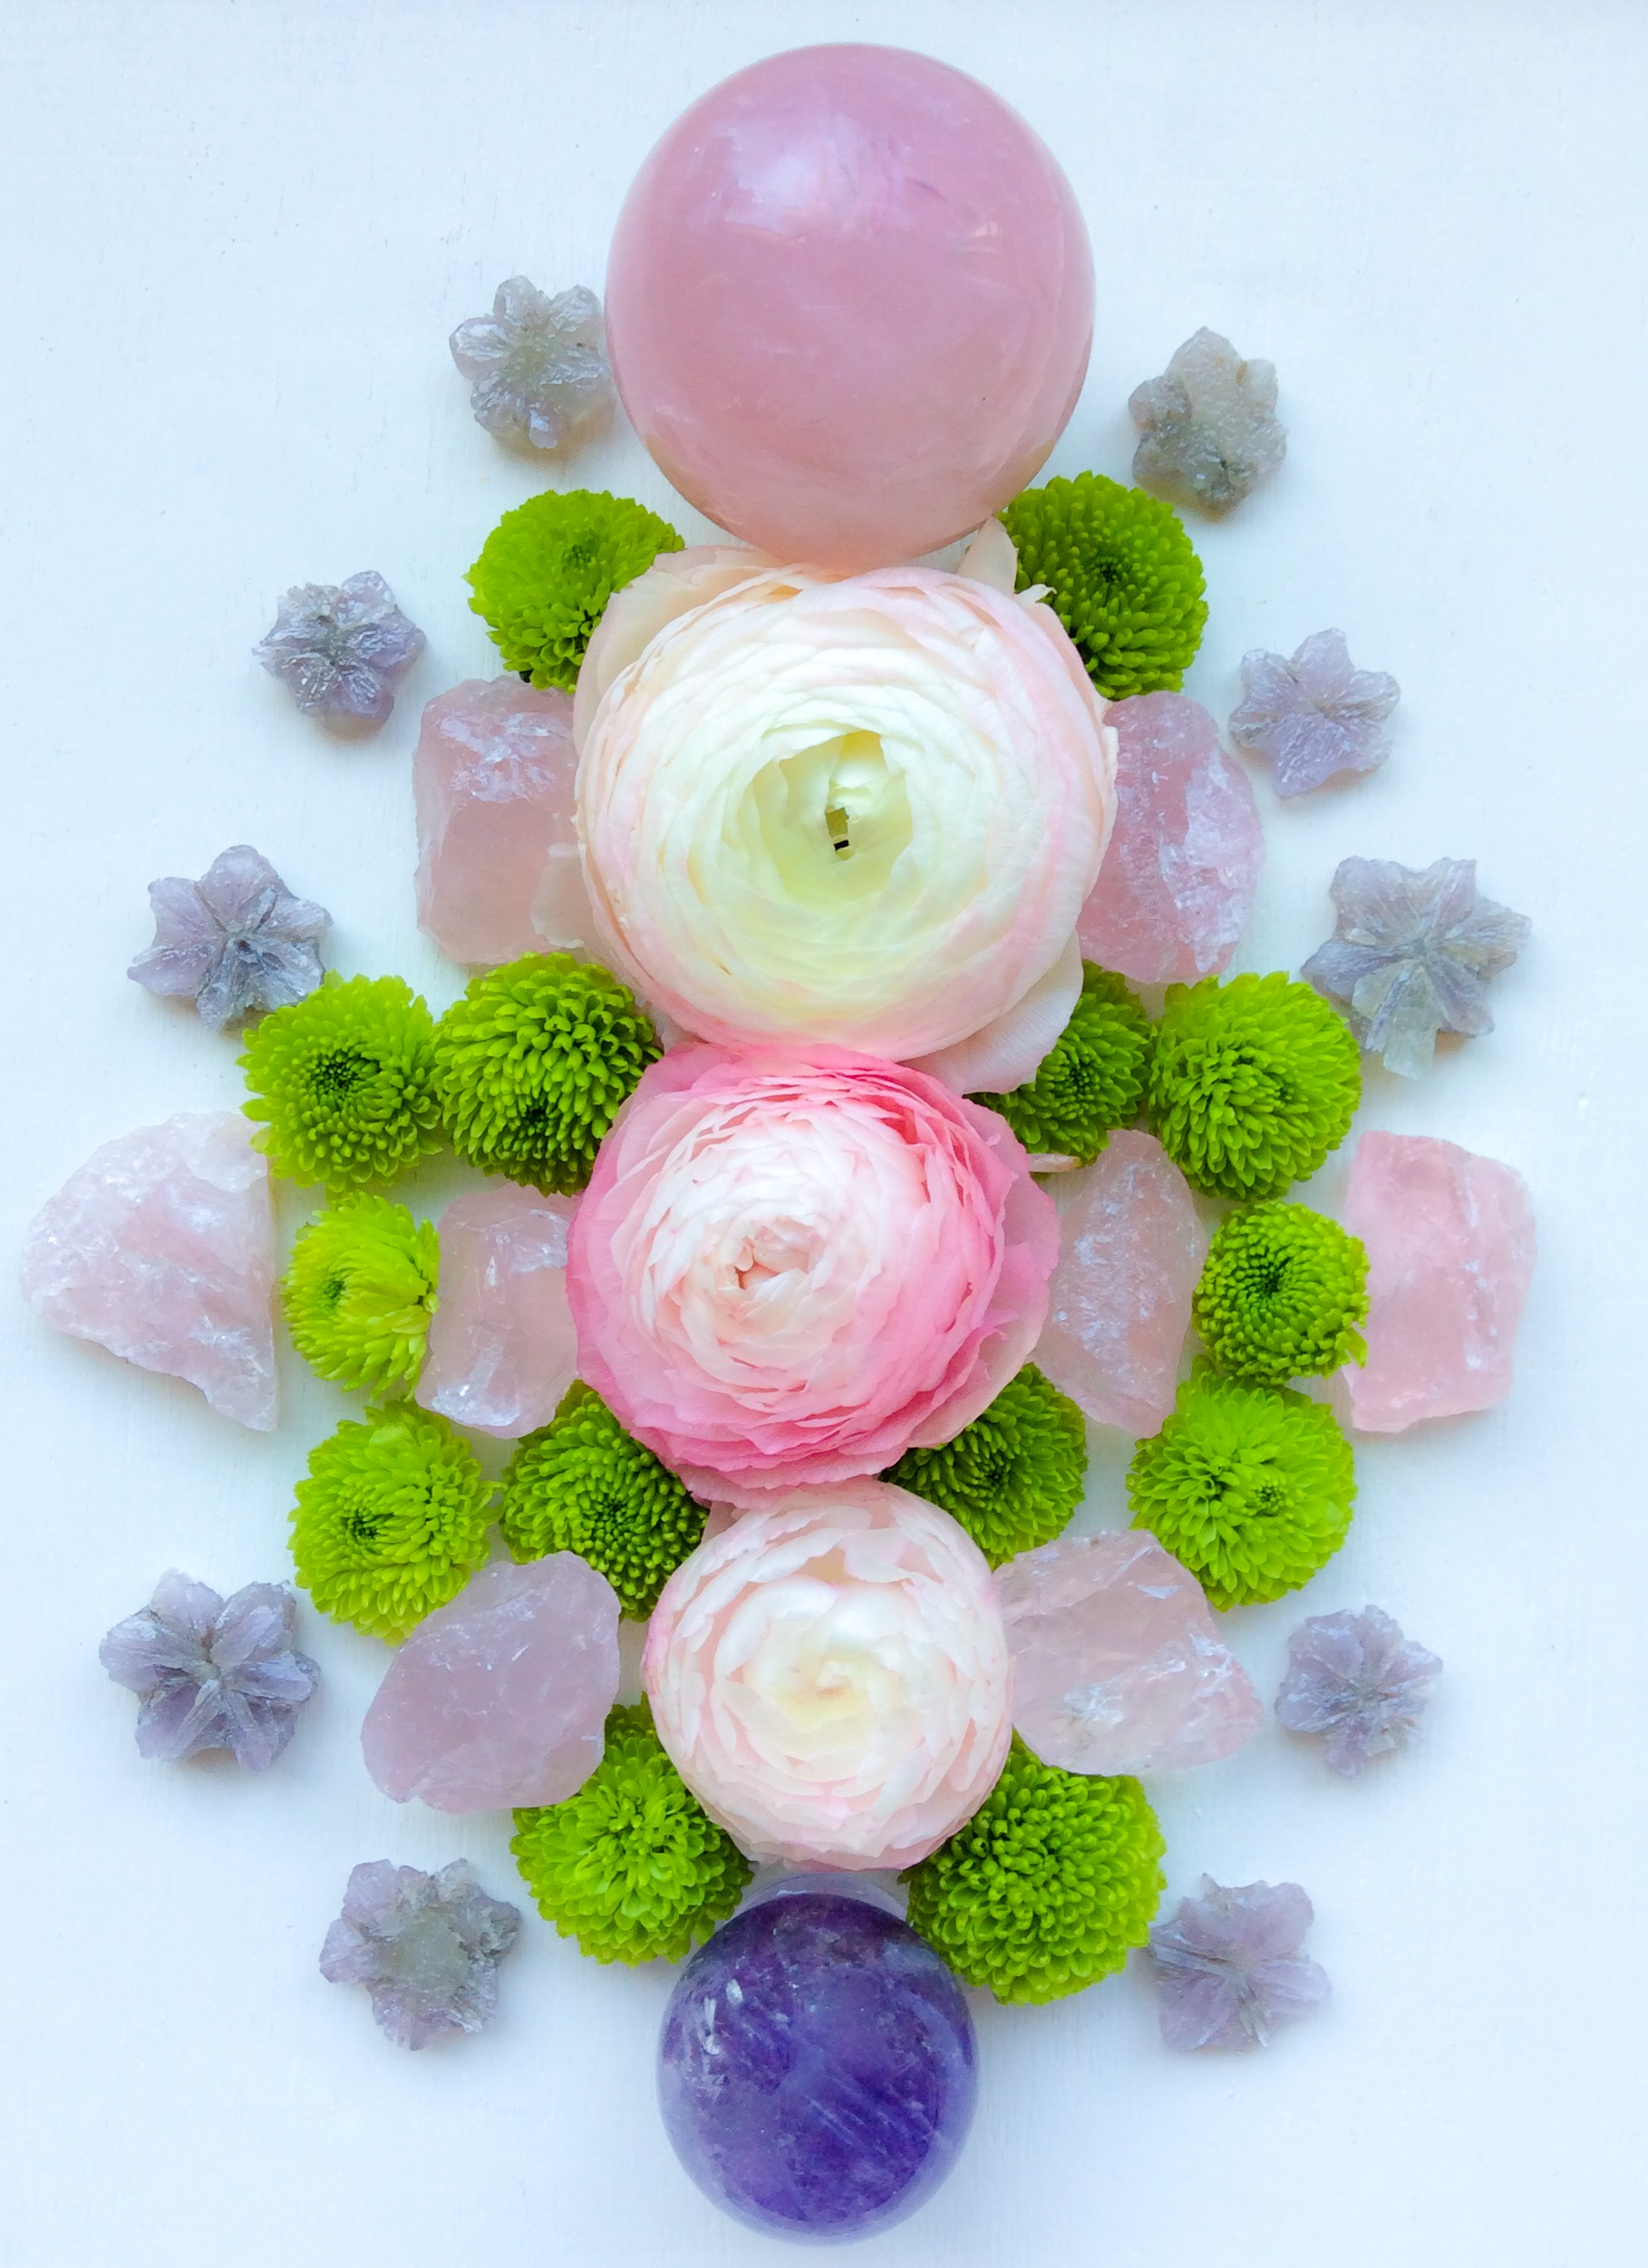 Rose Quartz, Aragonite, Amethyst, Ranunculus and Chrysanthemum